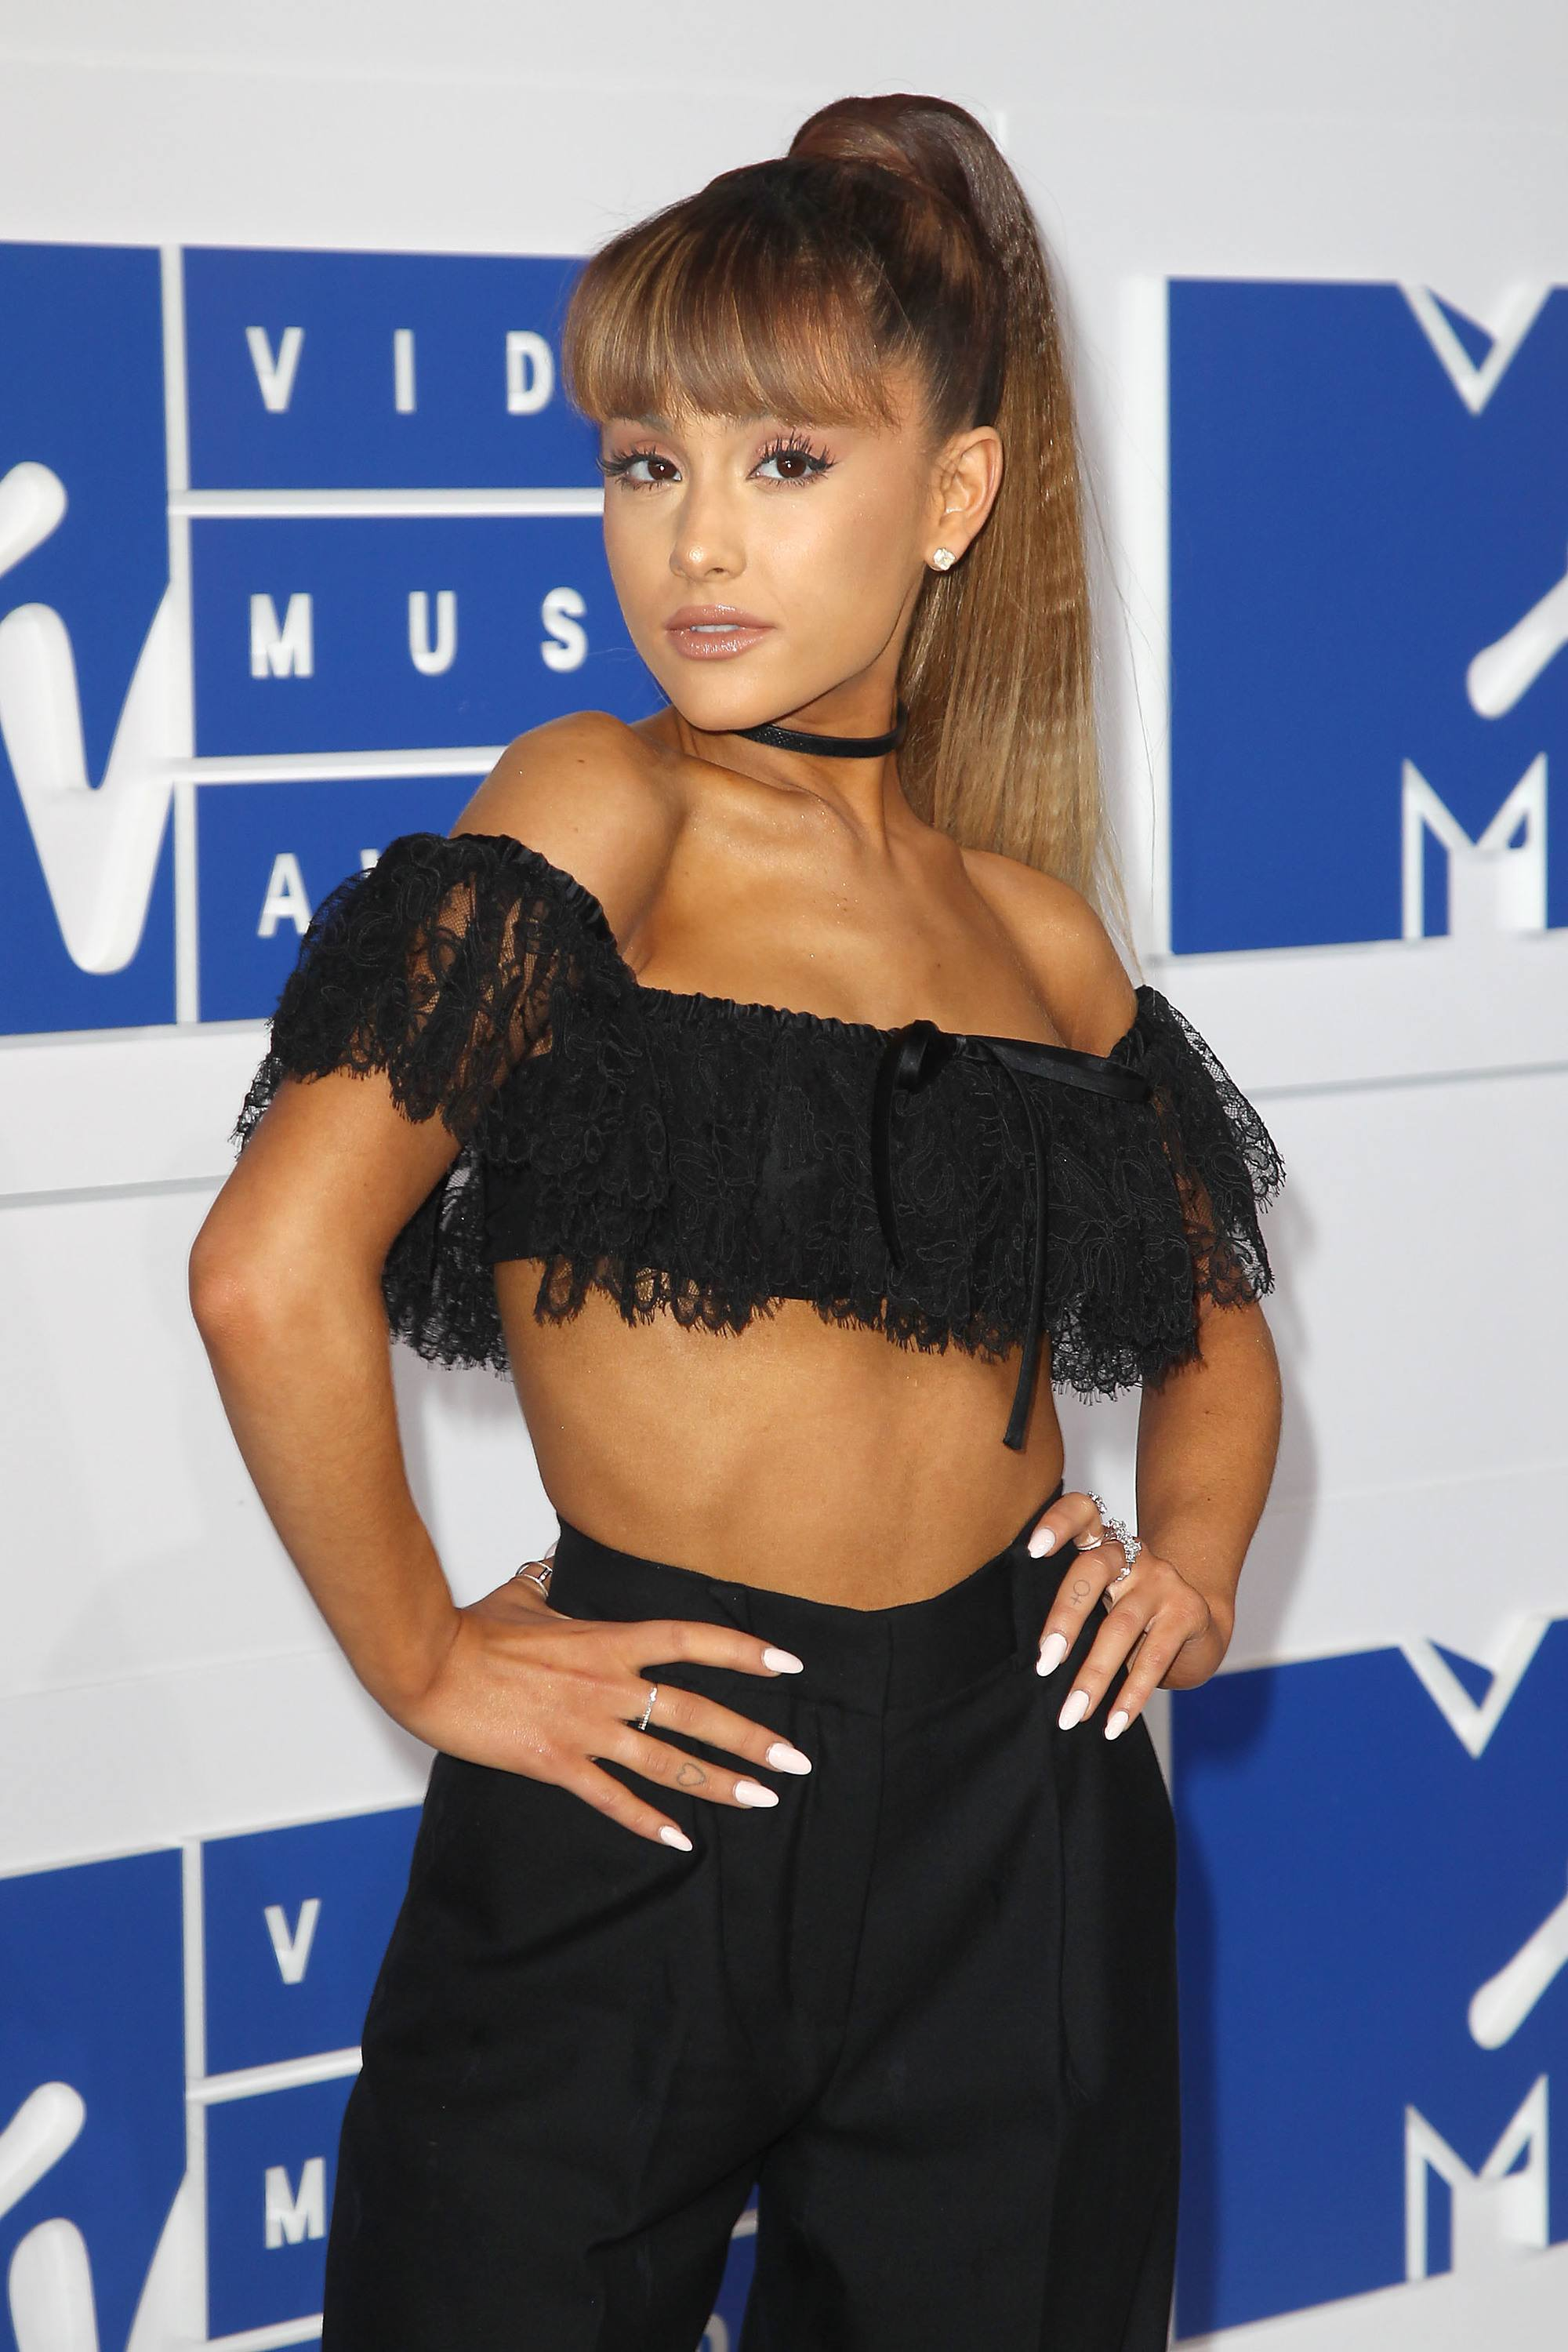 Ponytail with bangs: Ariana Grande with golden brown blunt bangs and crimped ponytail at MTV music awards.